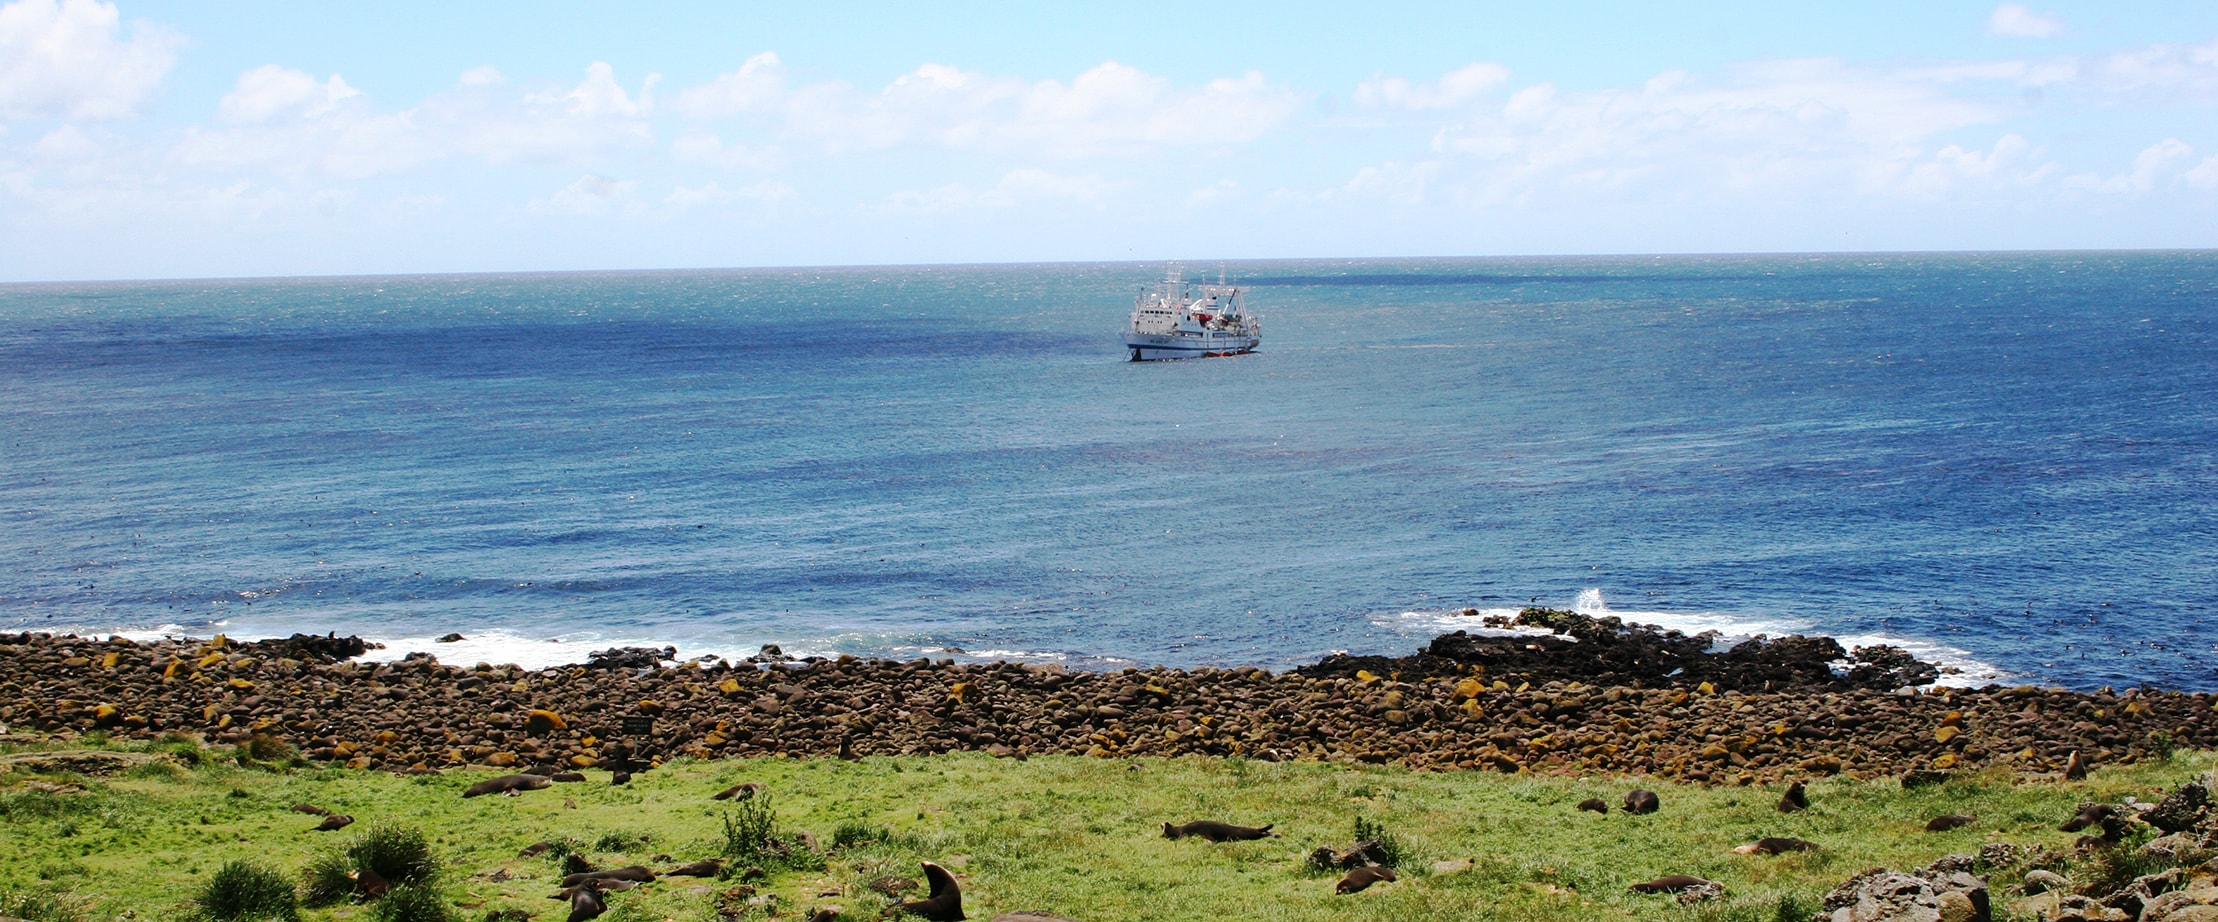 Southern seas and Antarctic lands fisheries - Sapmer contact us